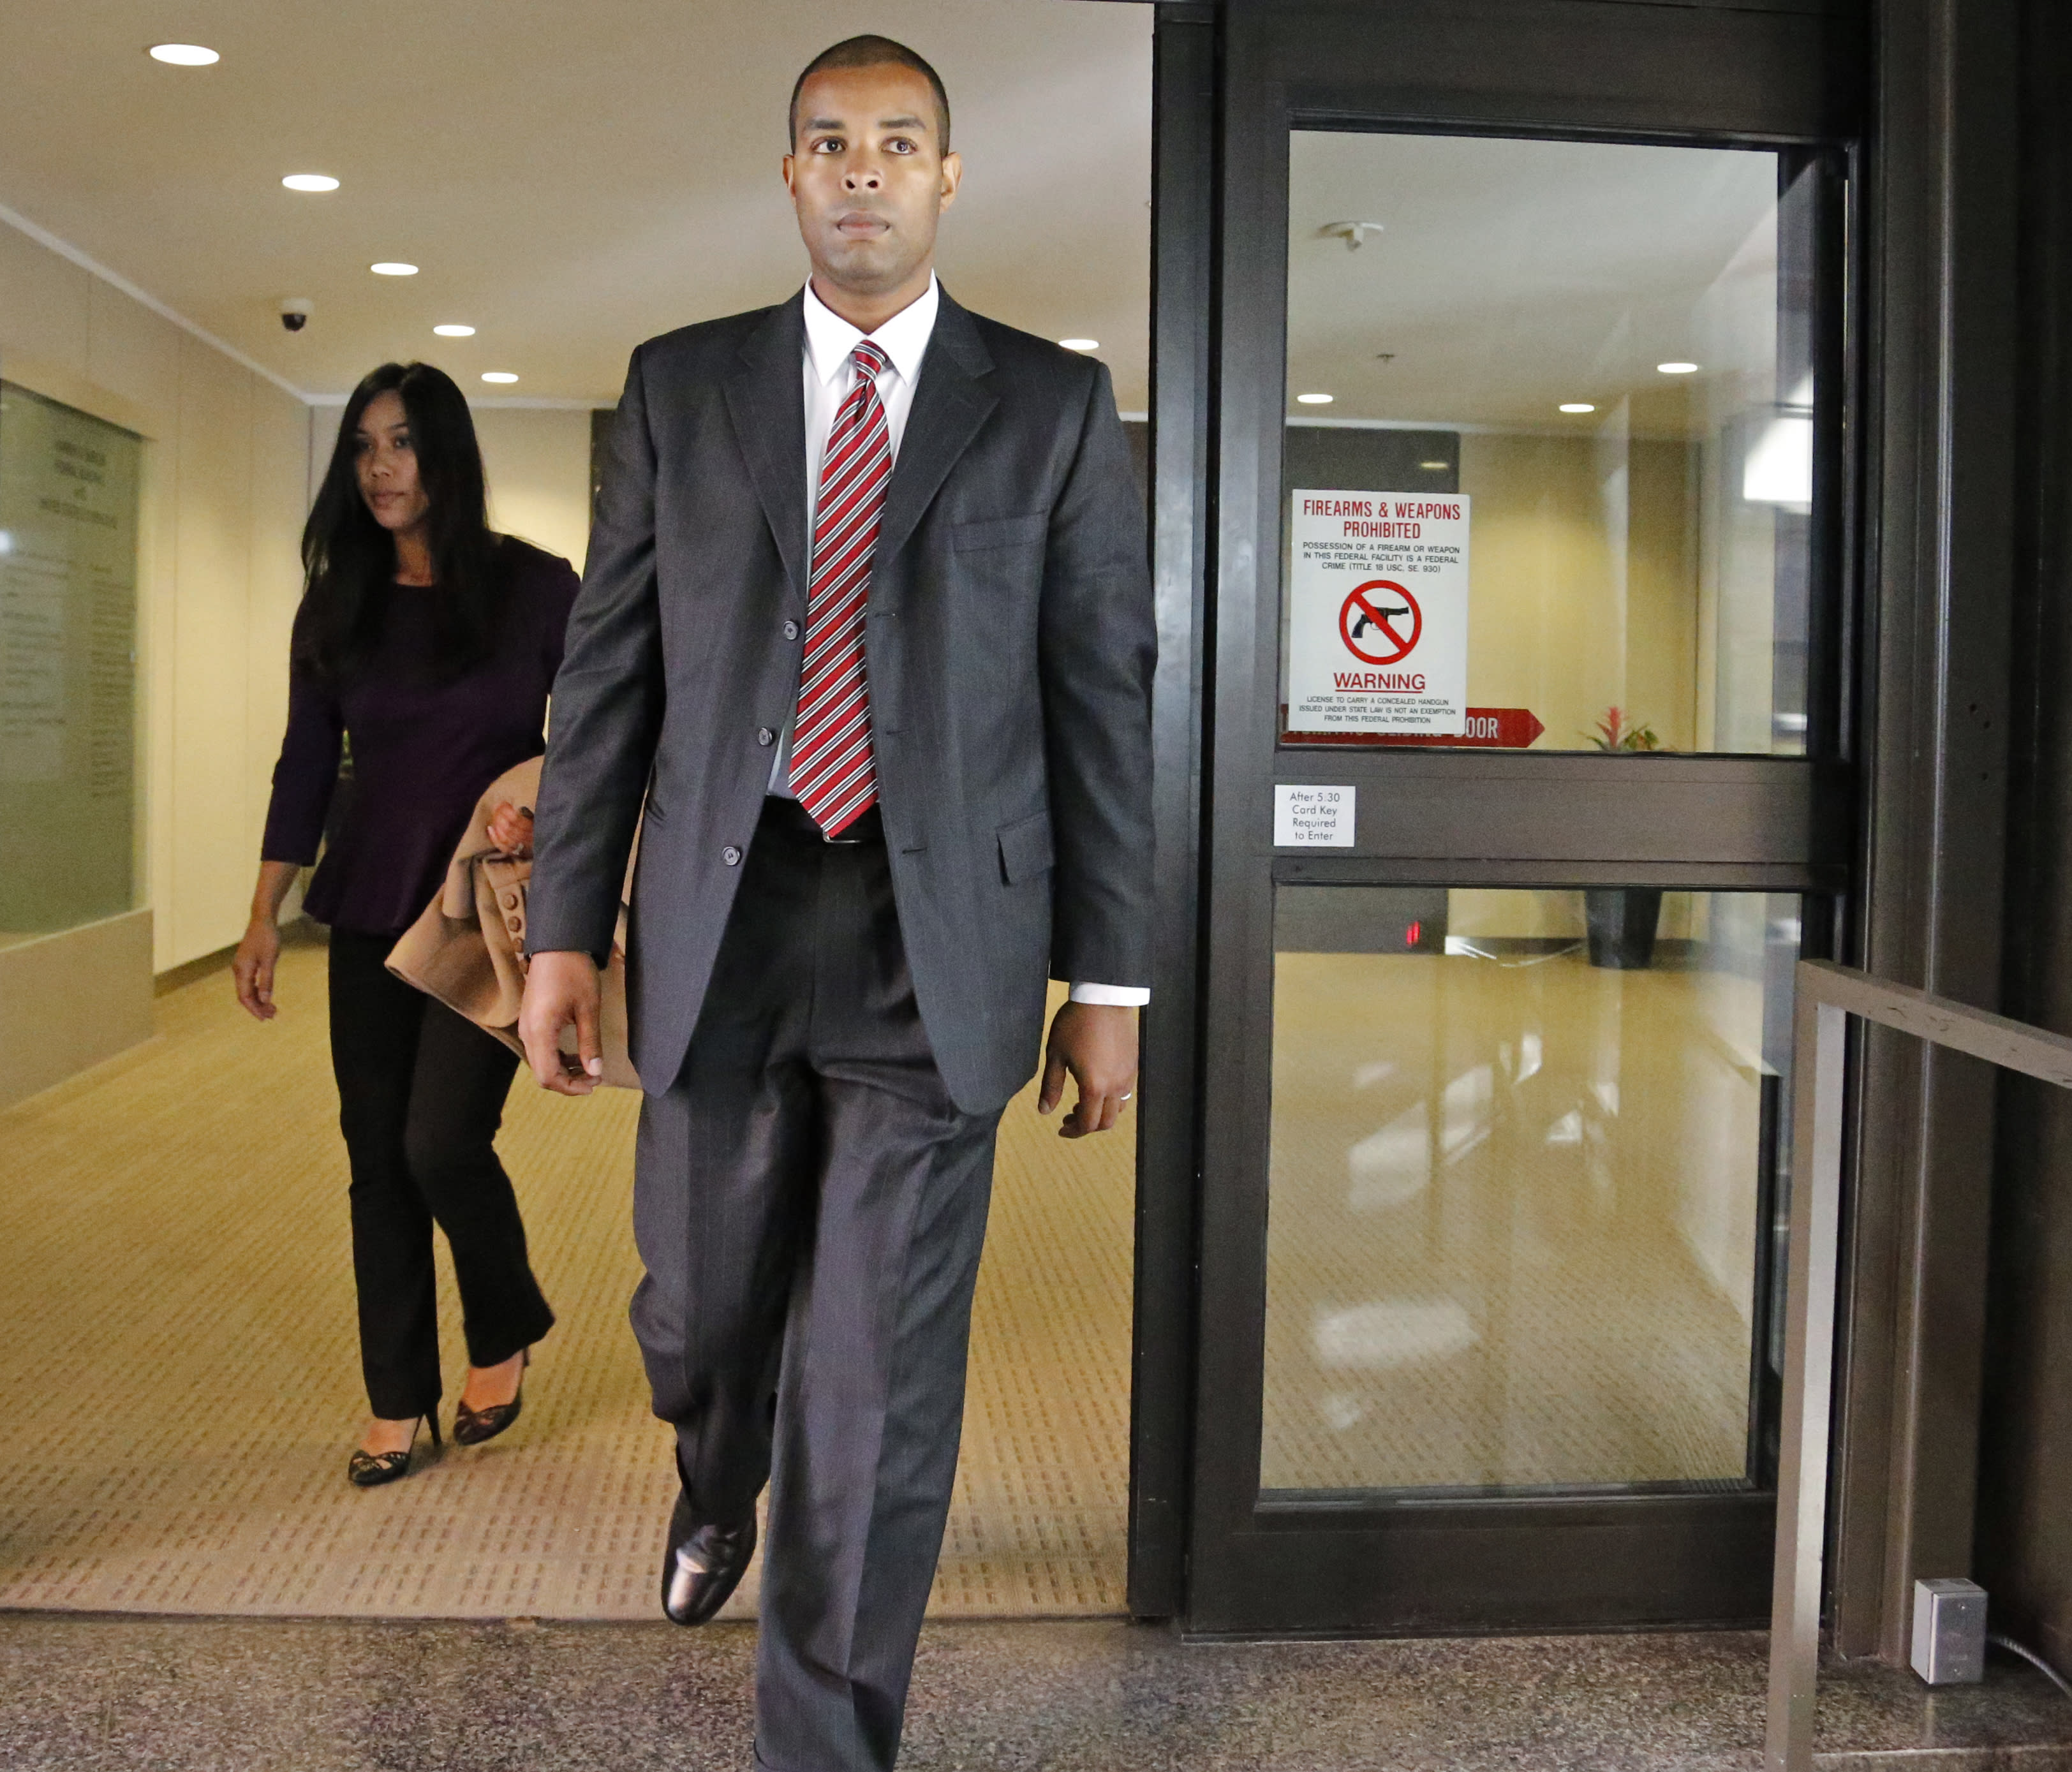 Former Minneapolis FBI agent Terry Albury walks out of the Federal Courthouse in St. Paul Thursday, Oct. 18, 2018 after Albury was sentenced to four years in prison for leaking classified defense documents to a reporter. (Shari L. Gross/Star Tribune via AP)